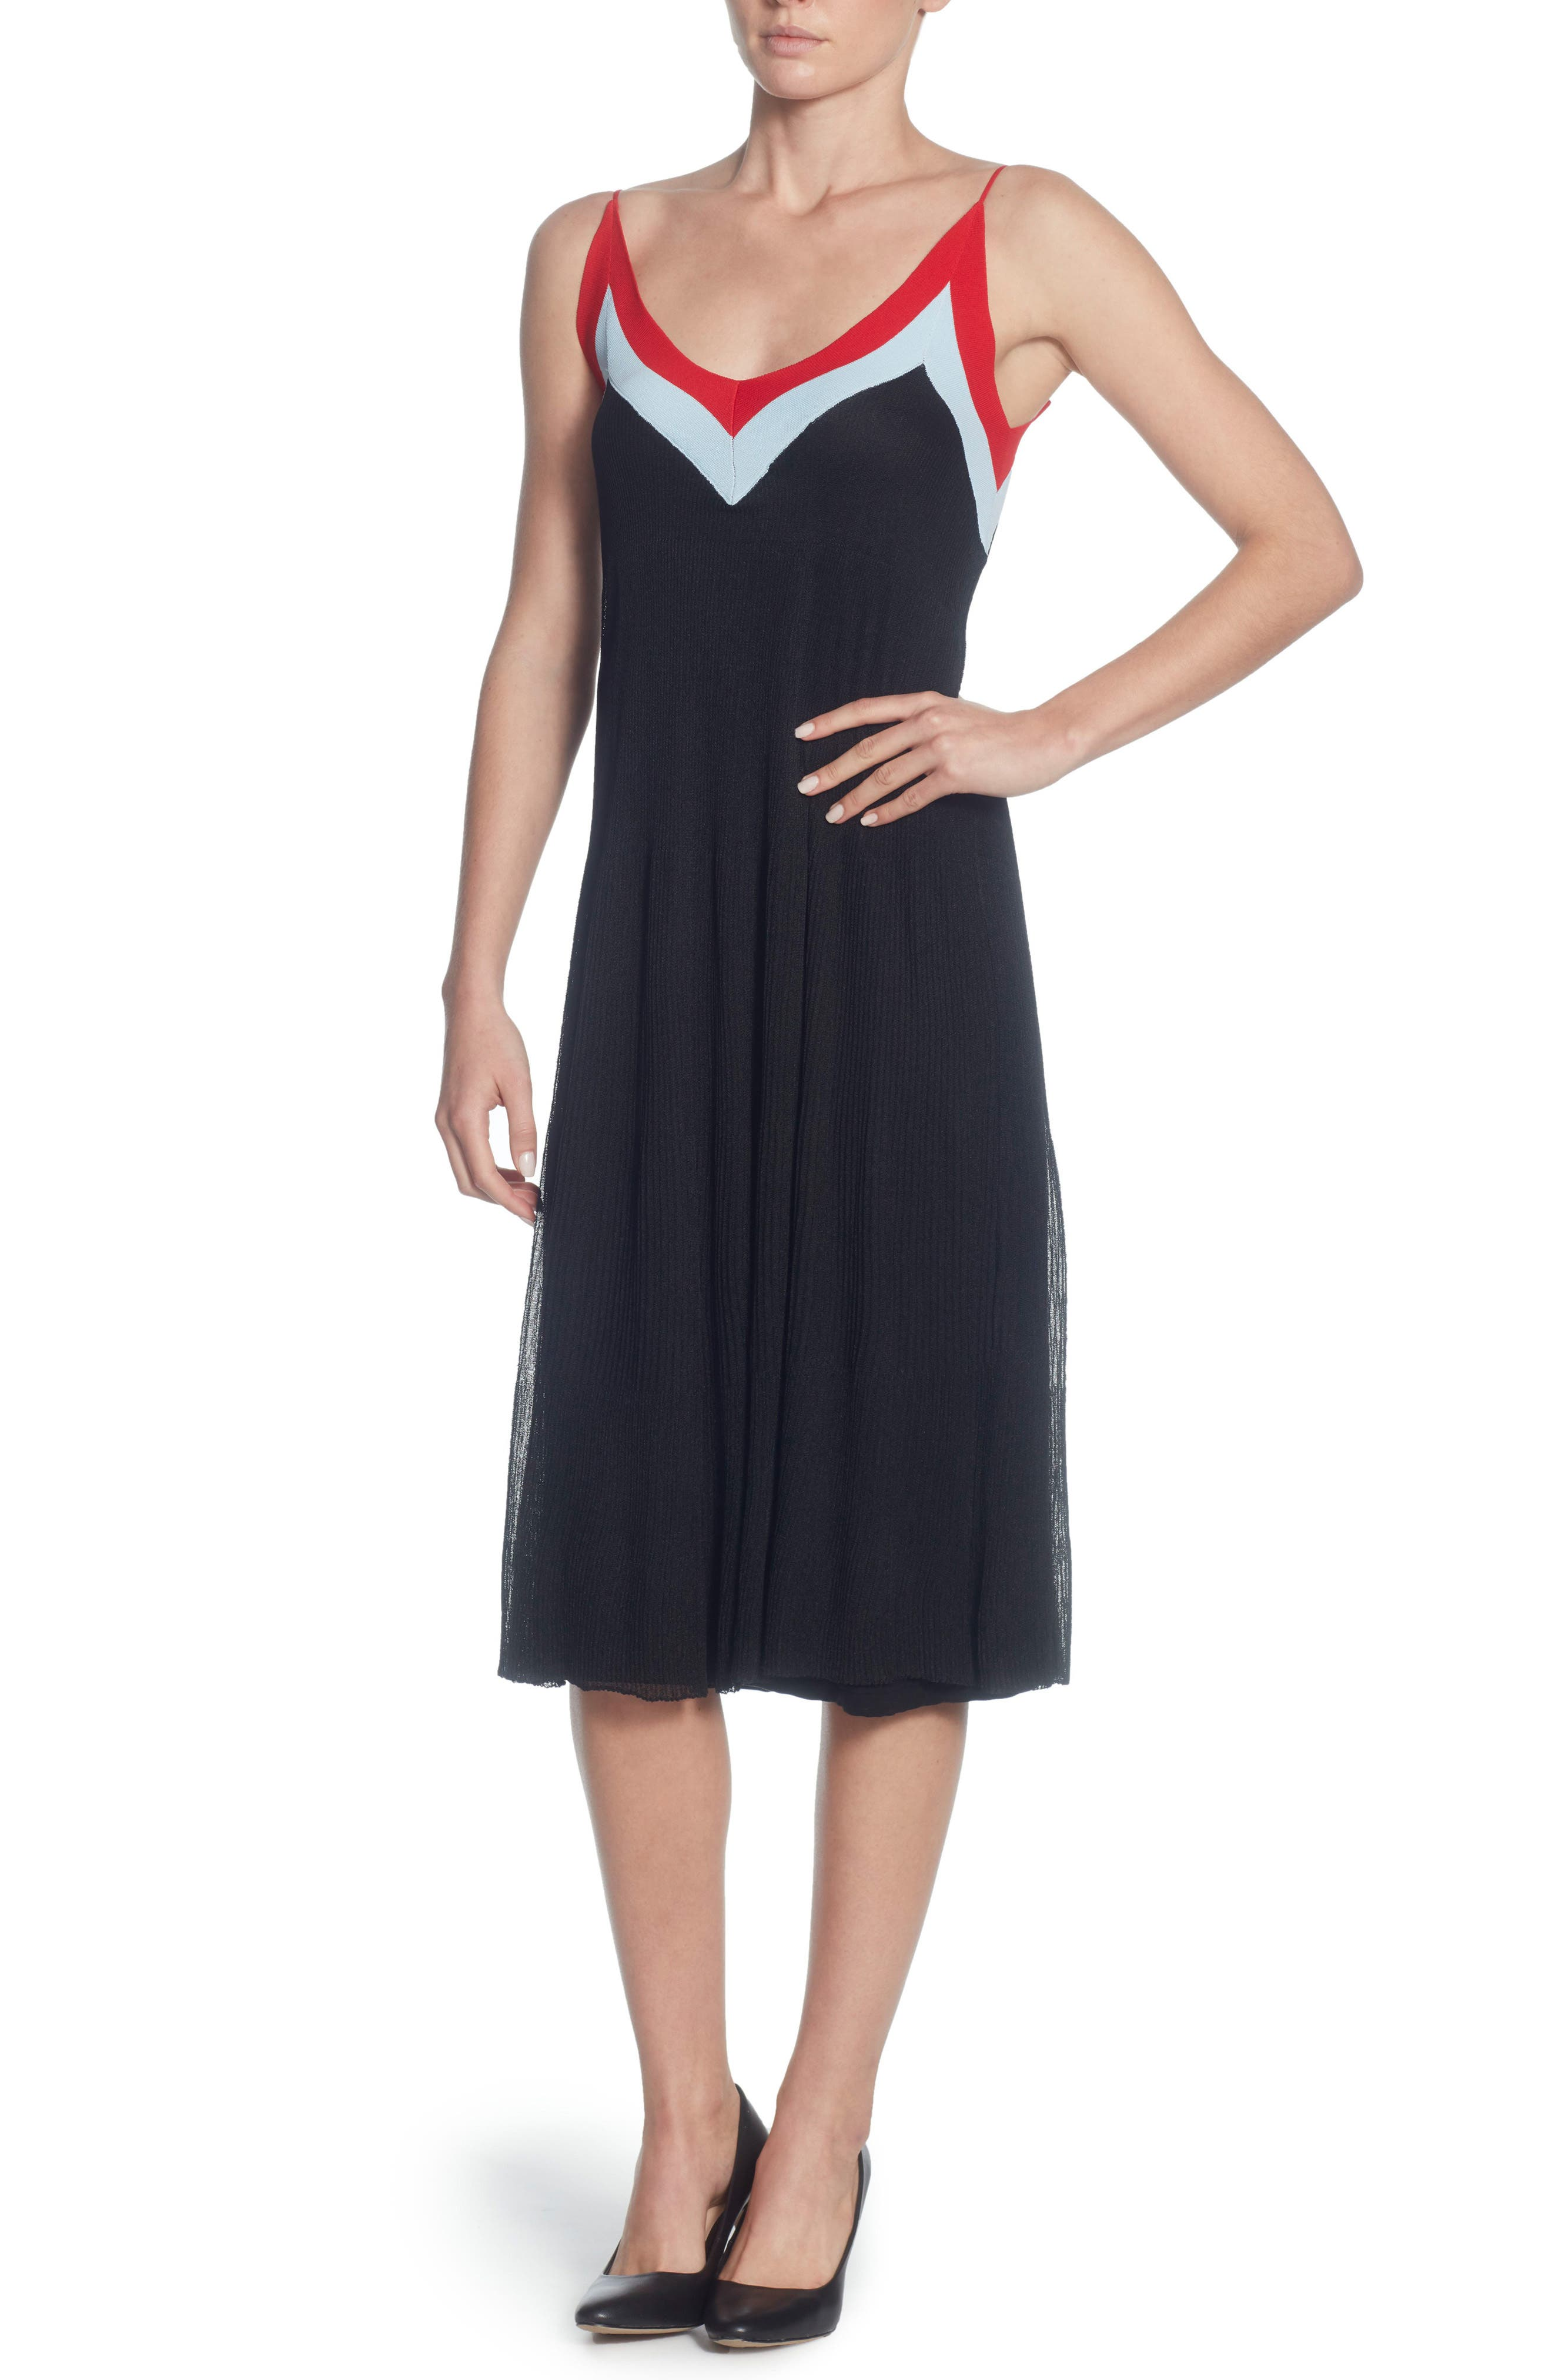 Olympe Fit and Flare Dress,                         Main,                         color, Black/ Powder Blue/ Red